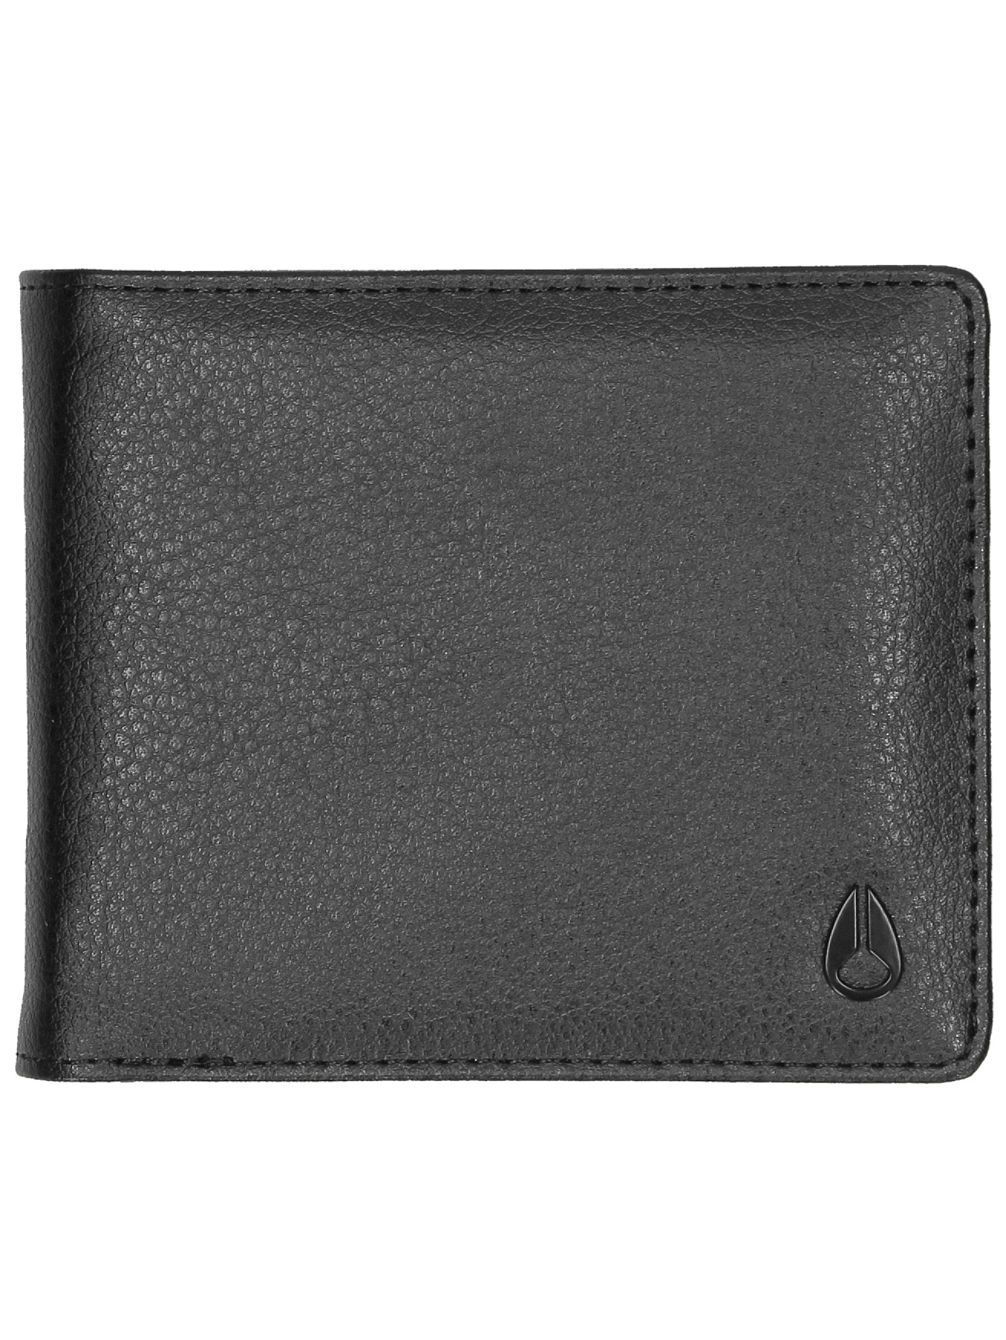 Pass Vegan Leather Coin Portefeuille